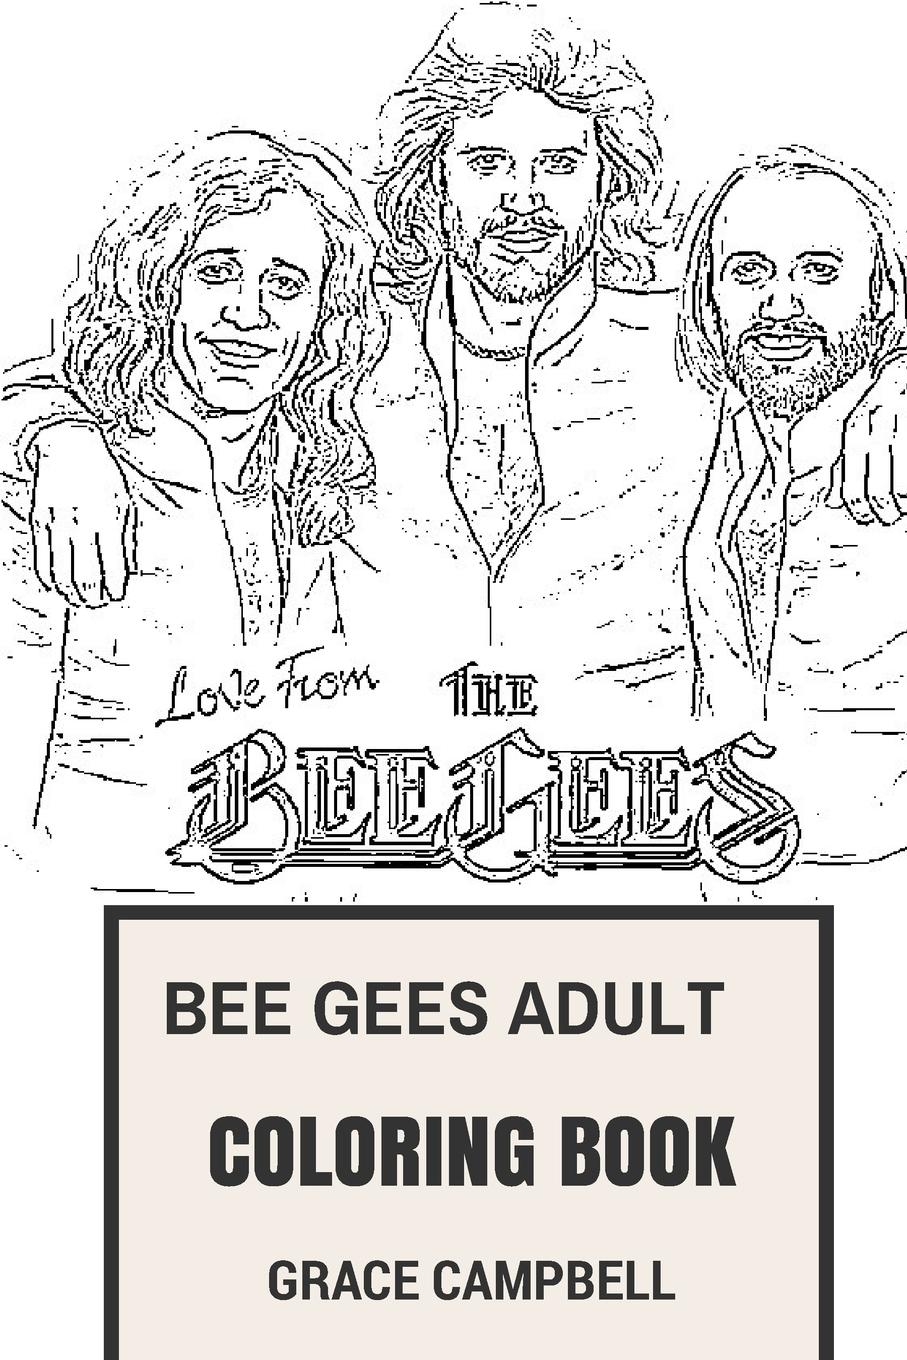 Bee Gees Adult Coloring Book Brothers Gibb And Soft Rock Classical Icons And Prodigy Artists Inspired Adult Coloring Book Paperback Walmart Com Walmart Com